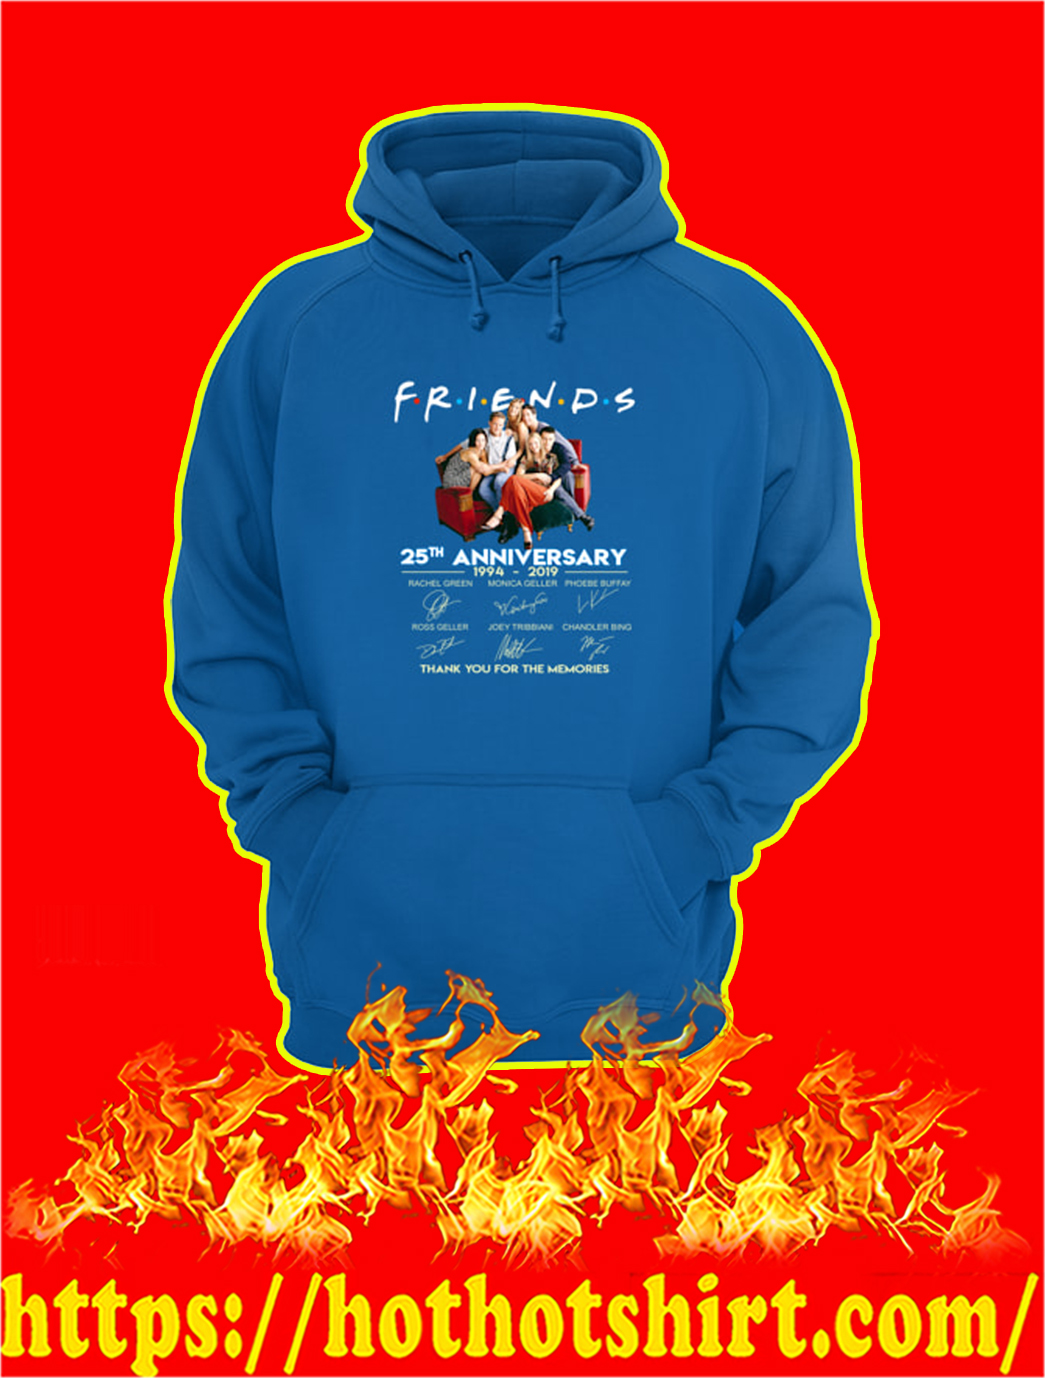 Friends 25th Anniversary 1994 2019 Thank You For The Memories hoodieFriends 25th Anniversary 1994 2019 Thank You For The Memories hoodie